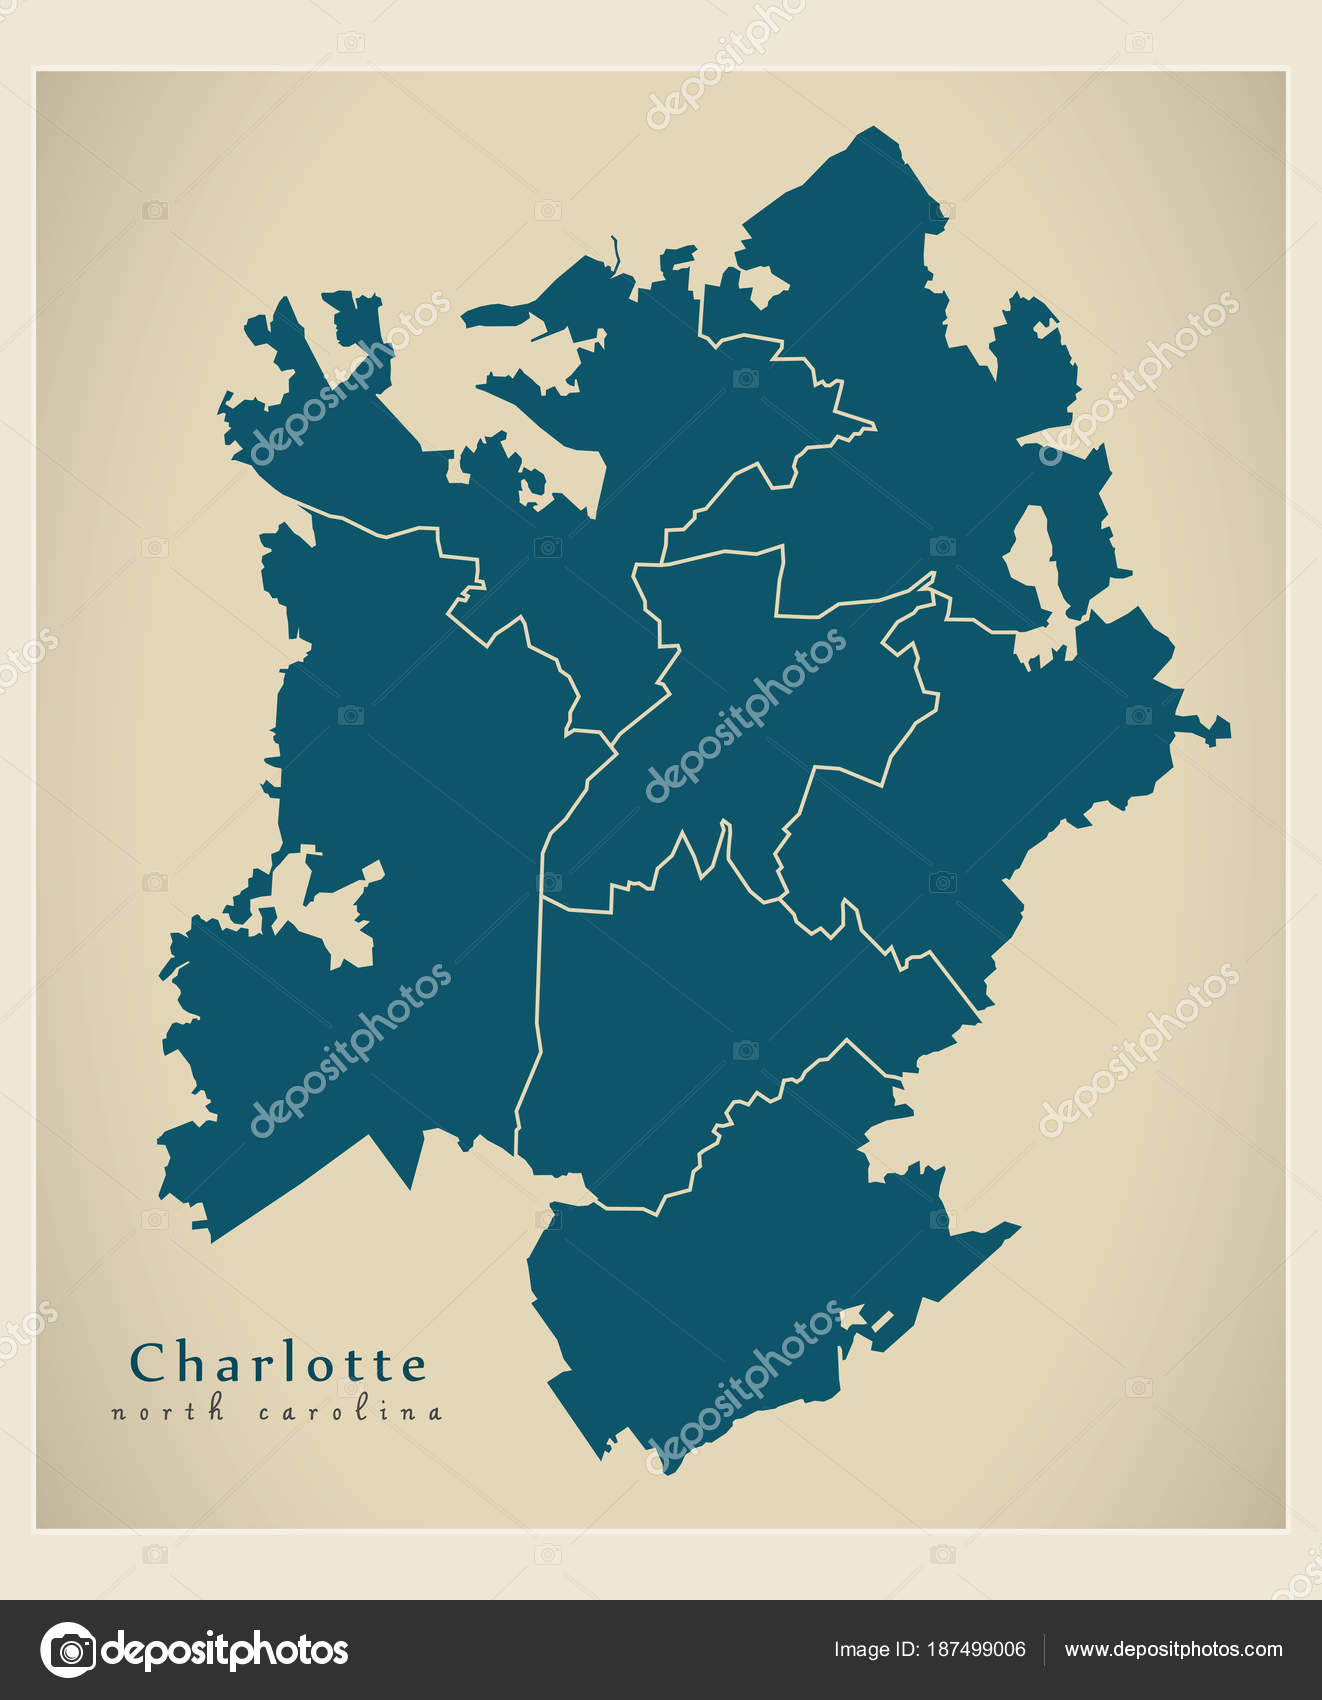 Moderne City Map - Charlotte North Carolina Stadt der Usa mit ...